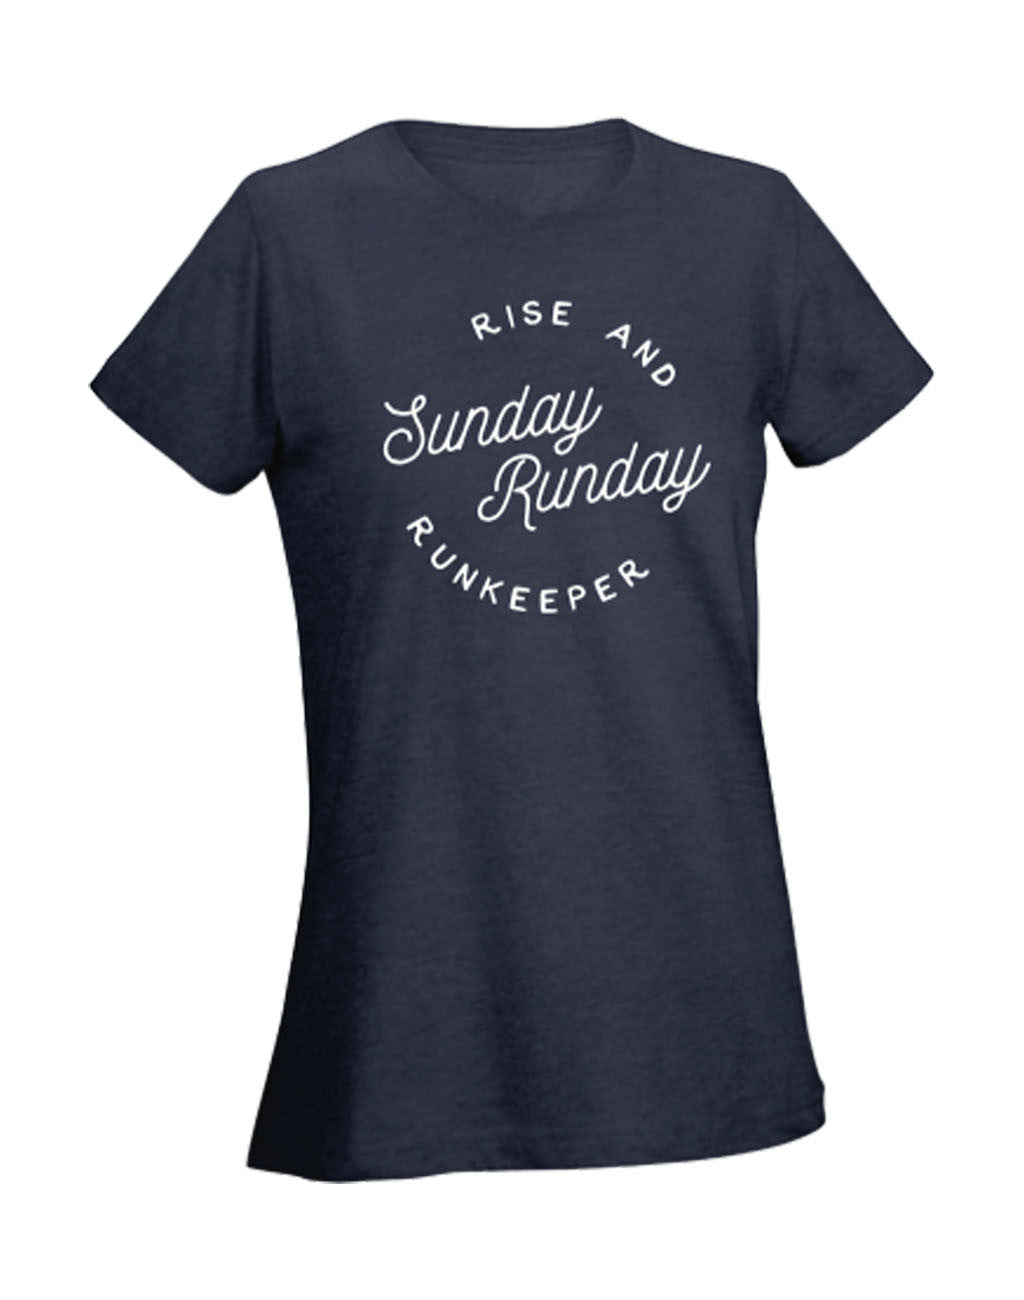 Women's - 'Sunday Runday' Short Sleeve Tee Women's T-Shirt - Runkeeper Official StoreNavy_master_image